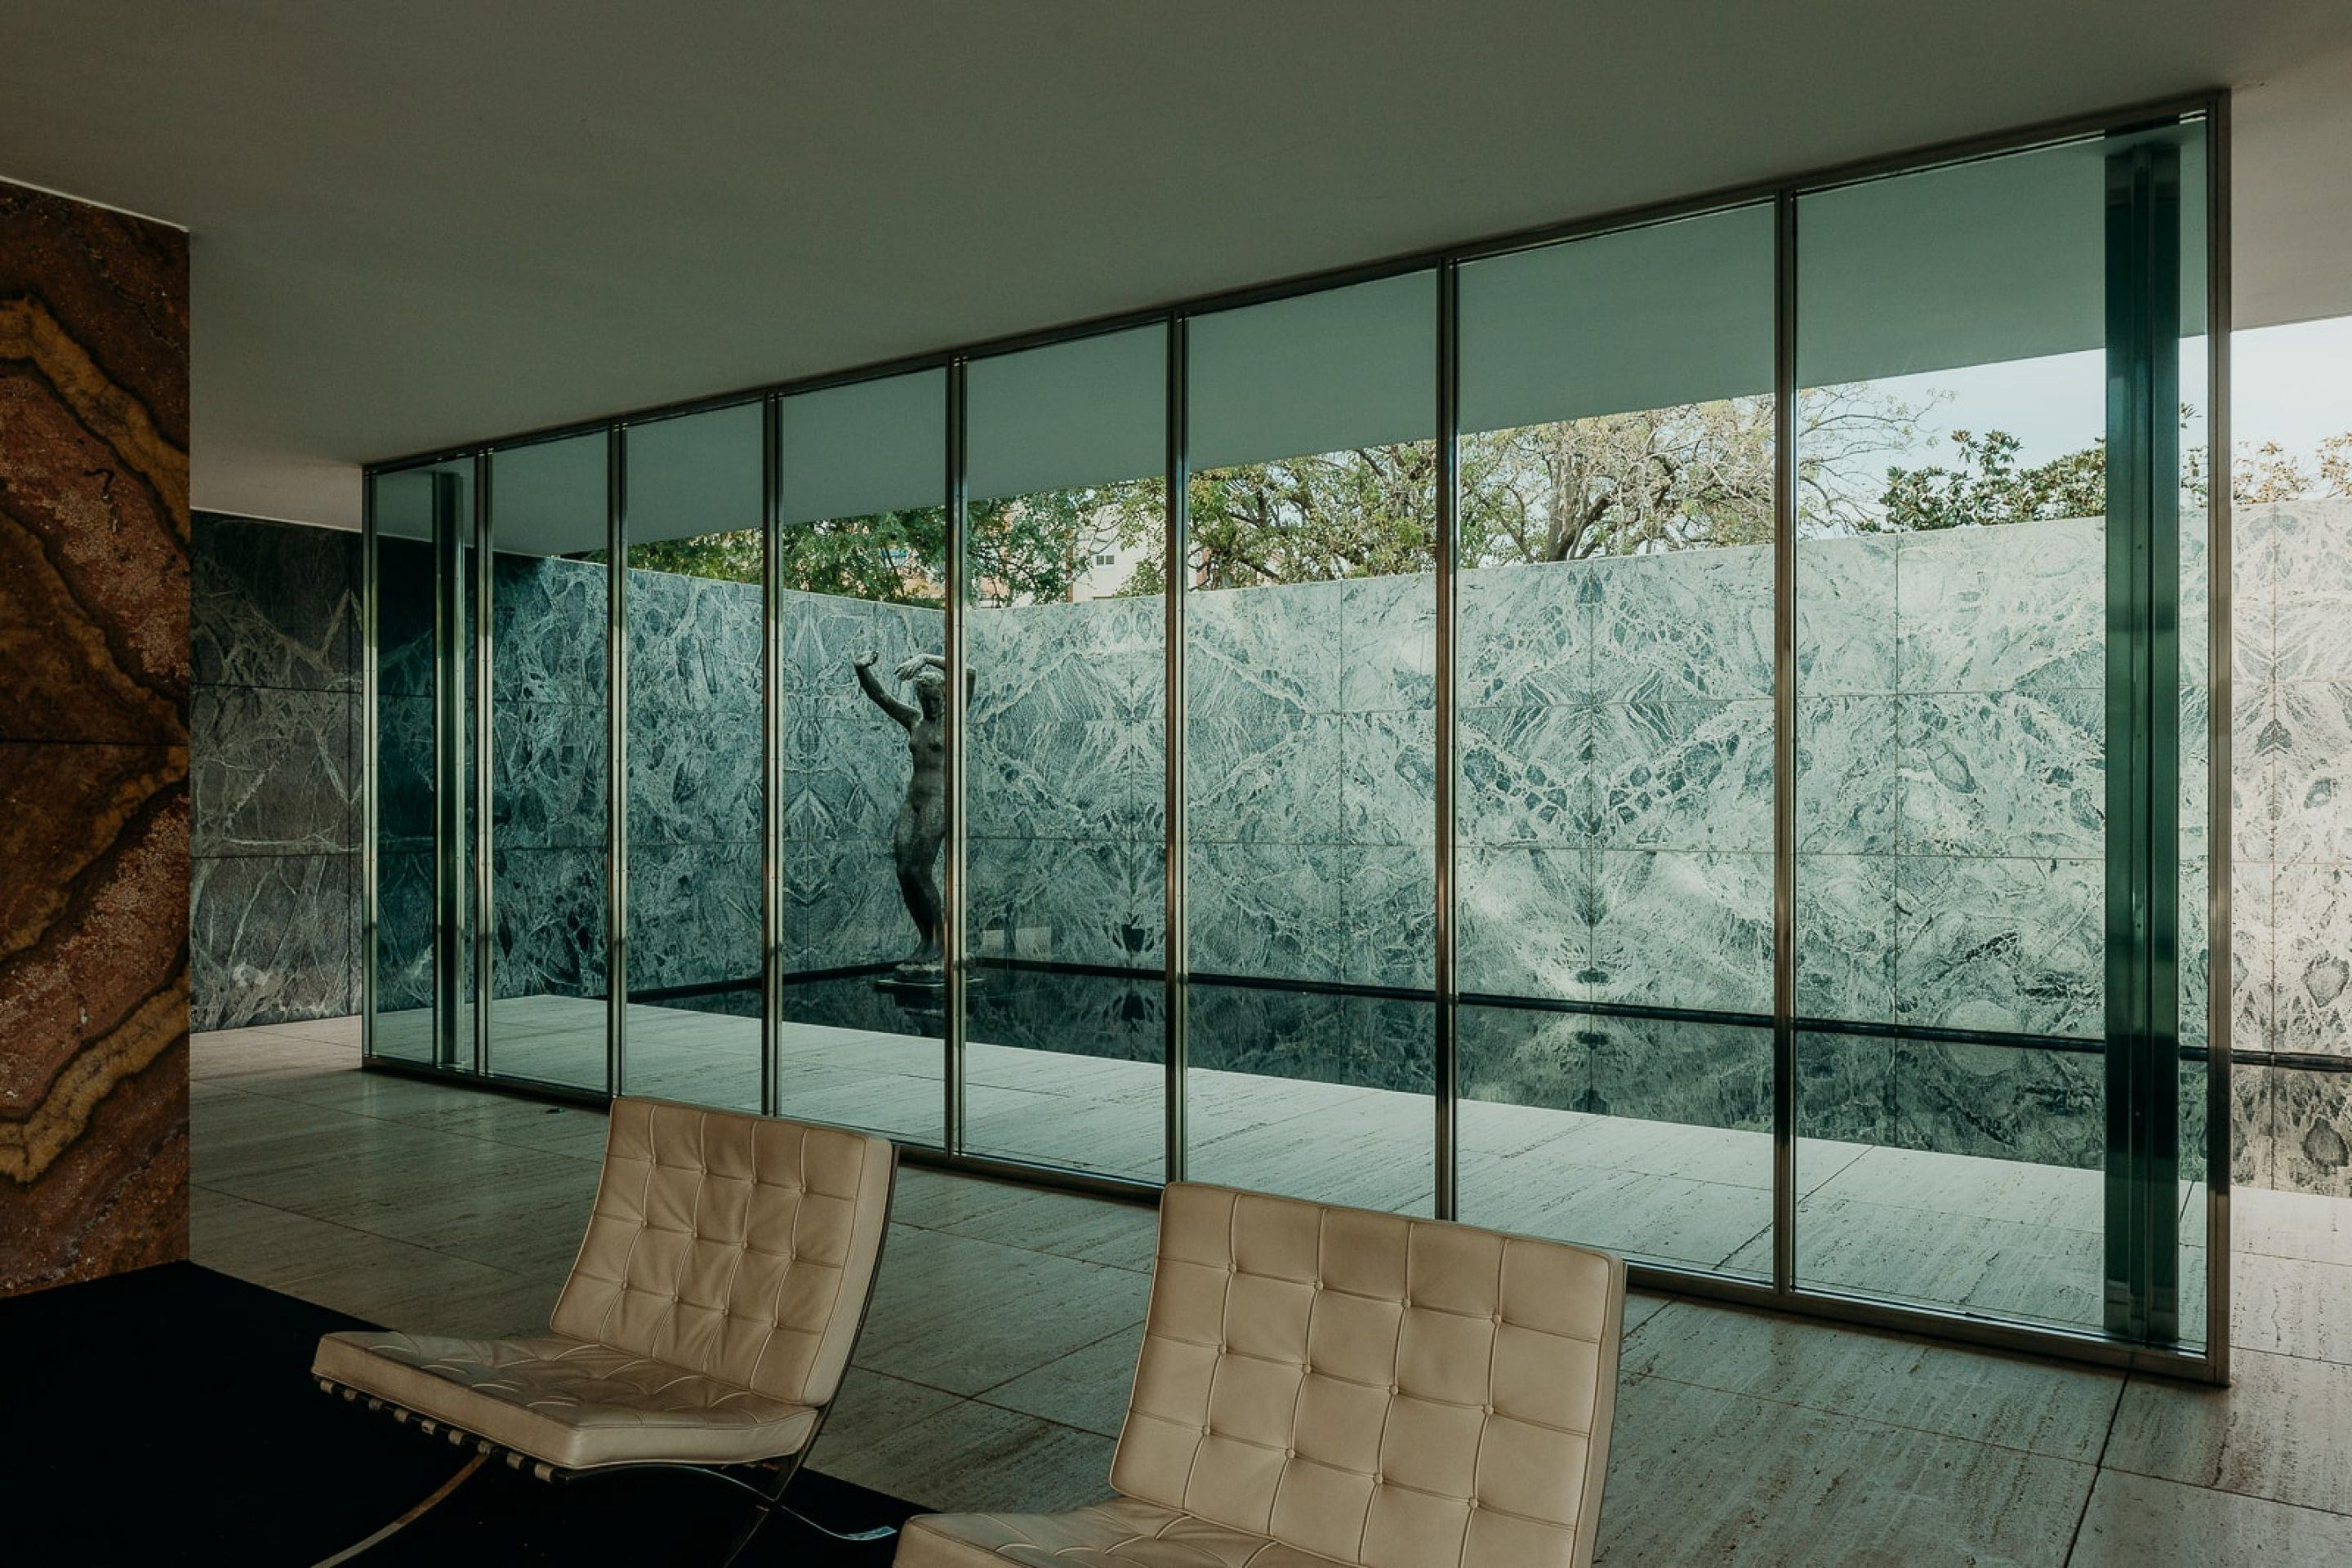 IGNANT-Architecture-Barcelona-Pavilion-Ludwig-Mies-Van-Der-Rohe-Maciej-Jezyk-08